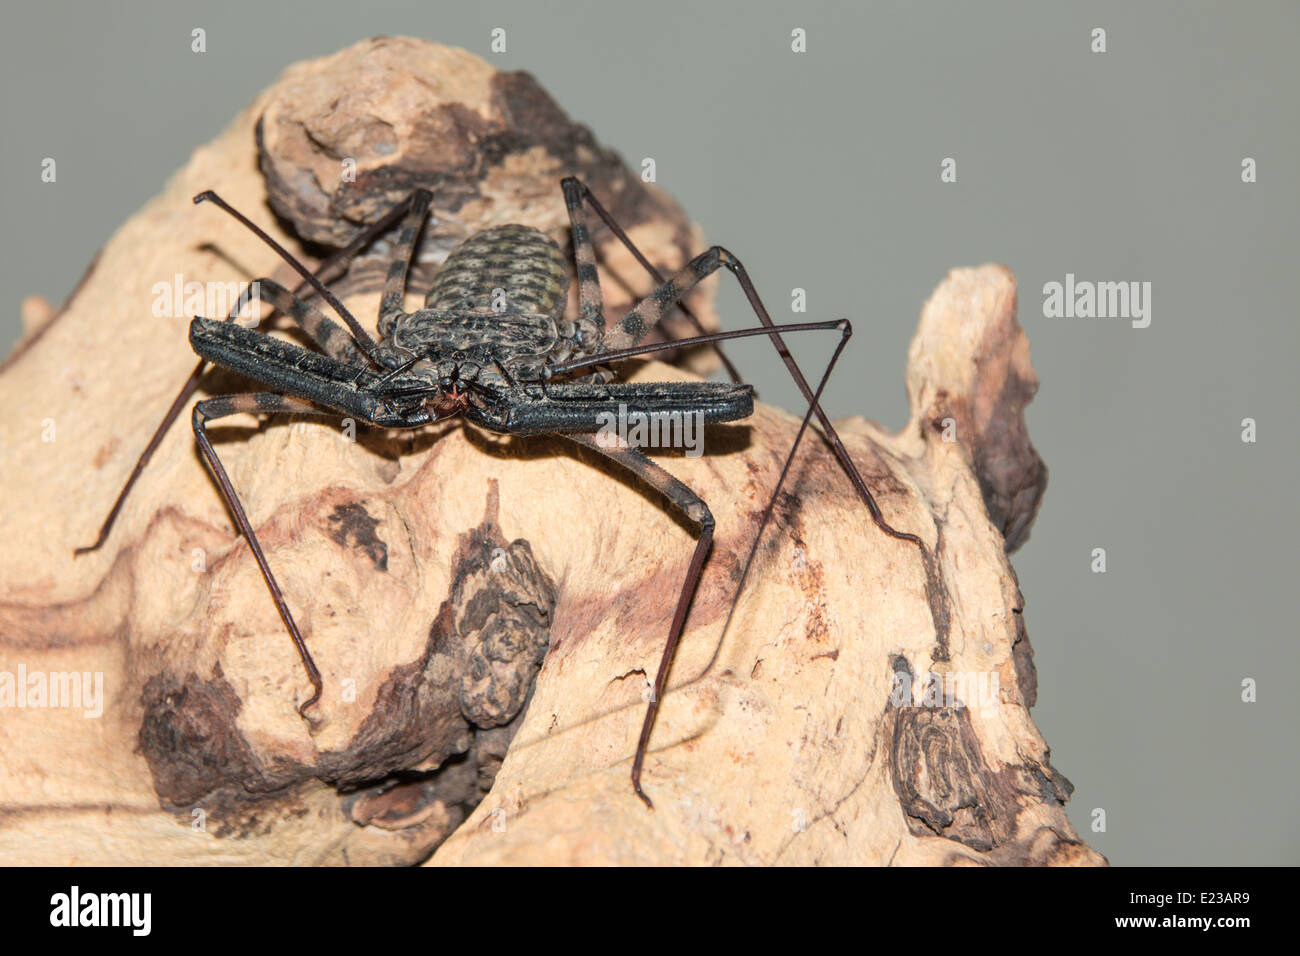 Tail-less whip Scorpion on Mopano wood(5 of 7 ) - Stock Image